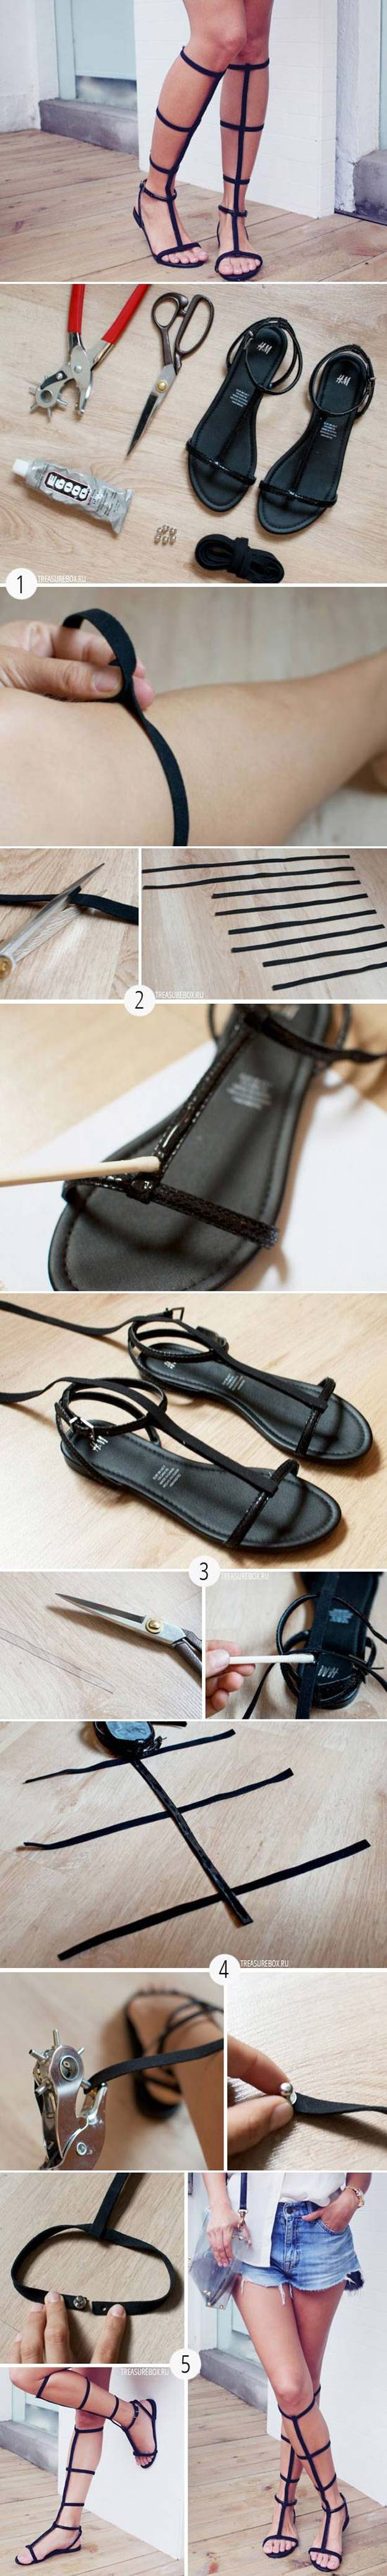 DIY Sandals and Flip Flops - DIY Nice Old Sandal Transformation - Creative, Cool and Easy Ways to Make or Update Your Shoes - Decorate Flip Flops with Cheap Dollar Store Crafts and Ideas - Beaded, Leather, Strappy and Painted Sandal Projects - Fun DIY Projects and Crafts for Teens and Teenagers http://diyprojectsforteens.com/diy-sandals